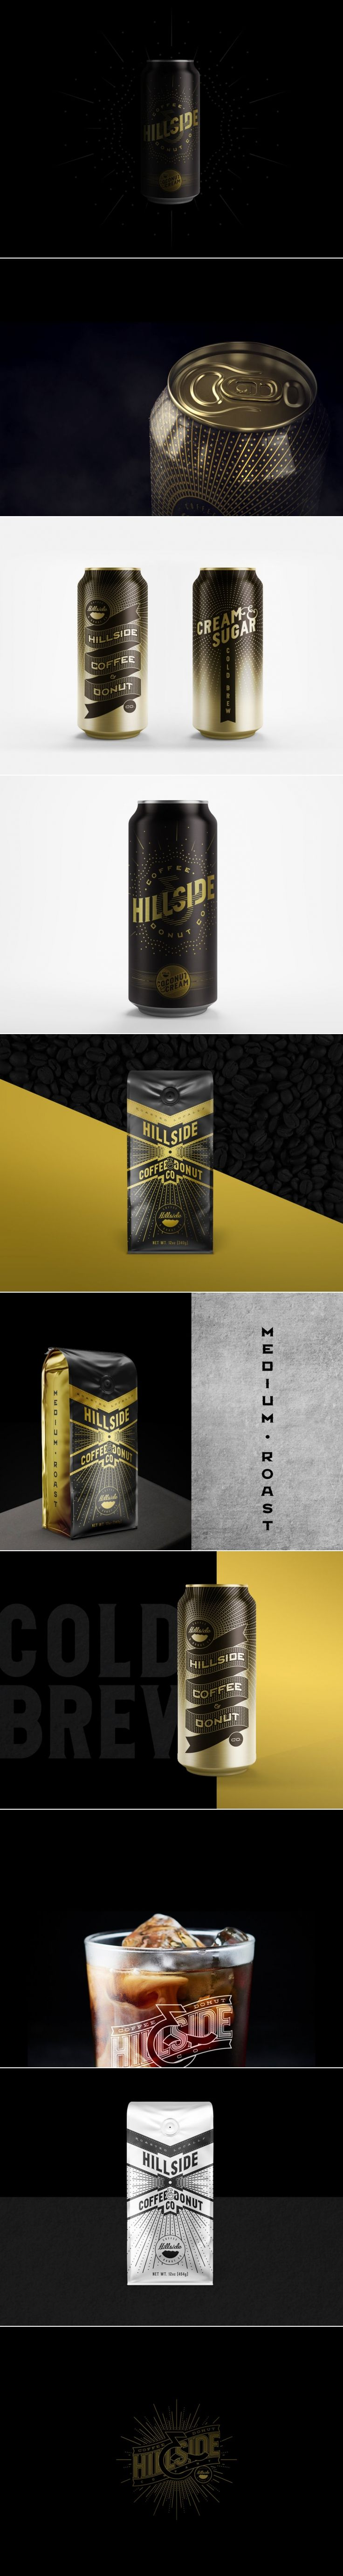 Get Your Caffeine Fix On The Go With This Coffee In a Can — The Dieline | Packaging & Branding Design & Innovation News